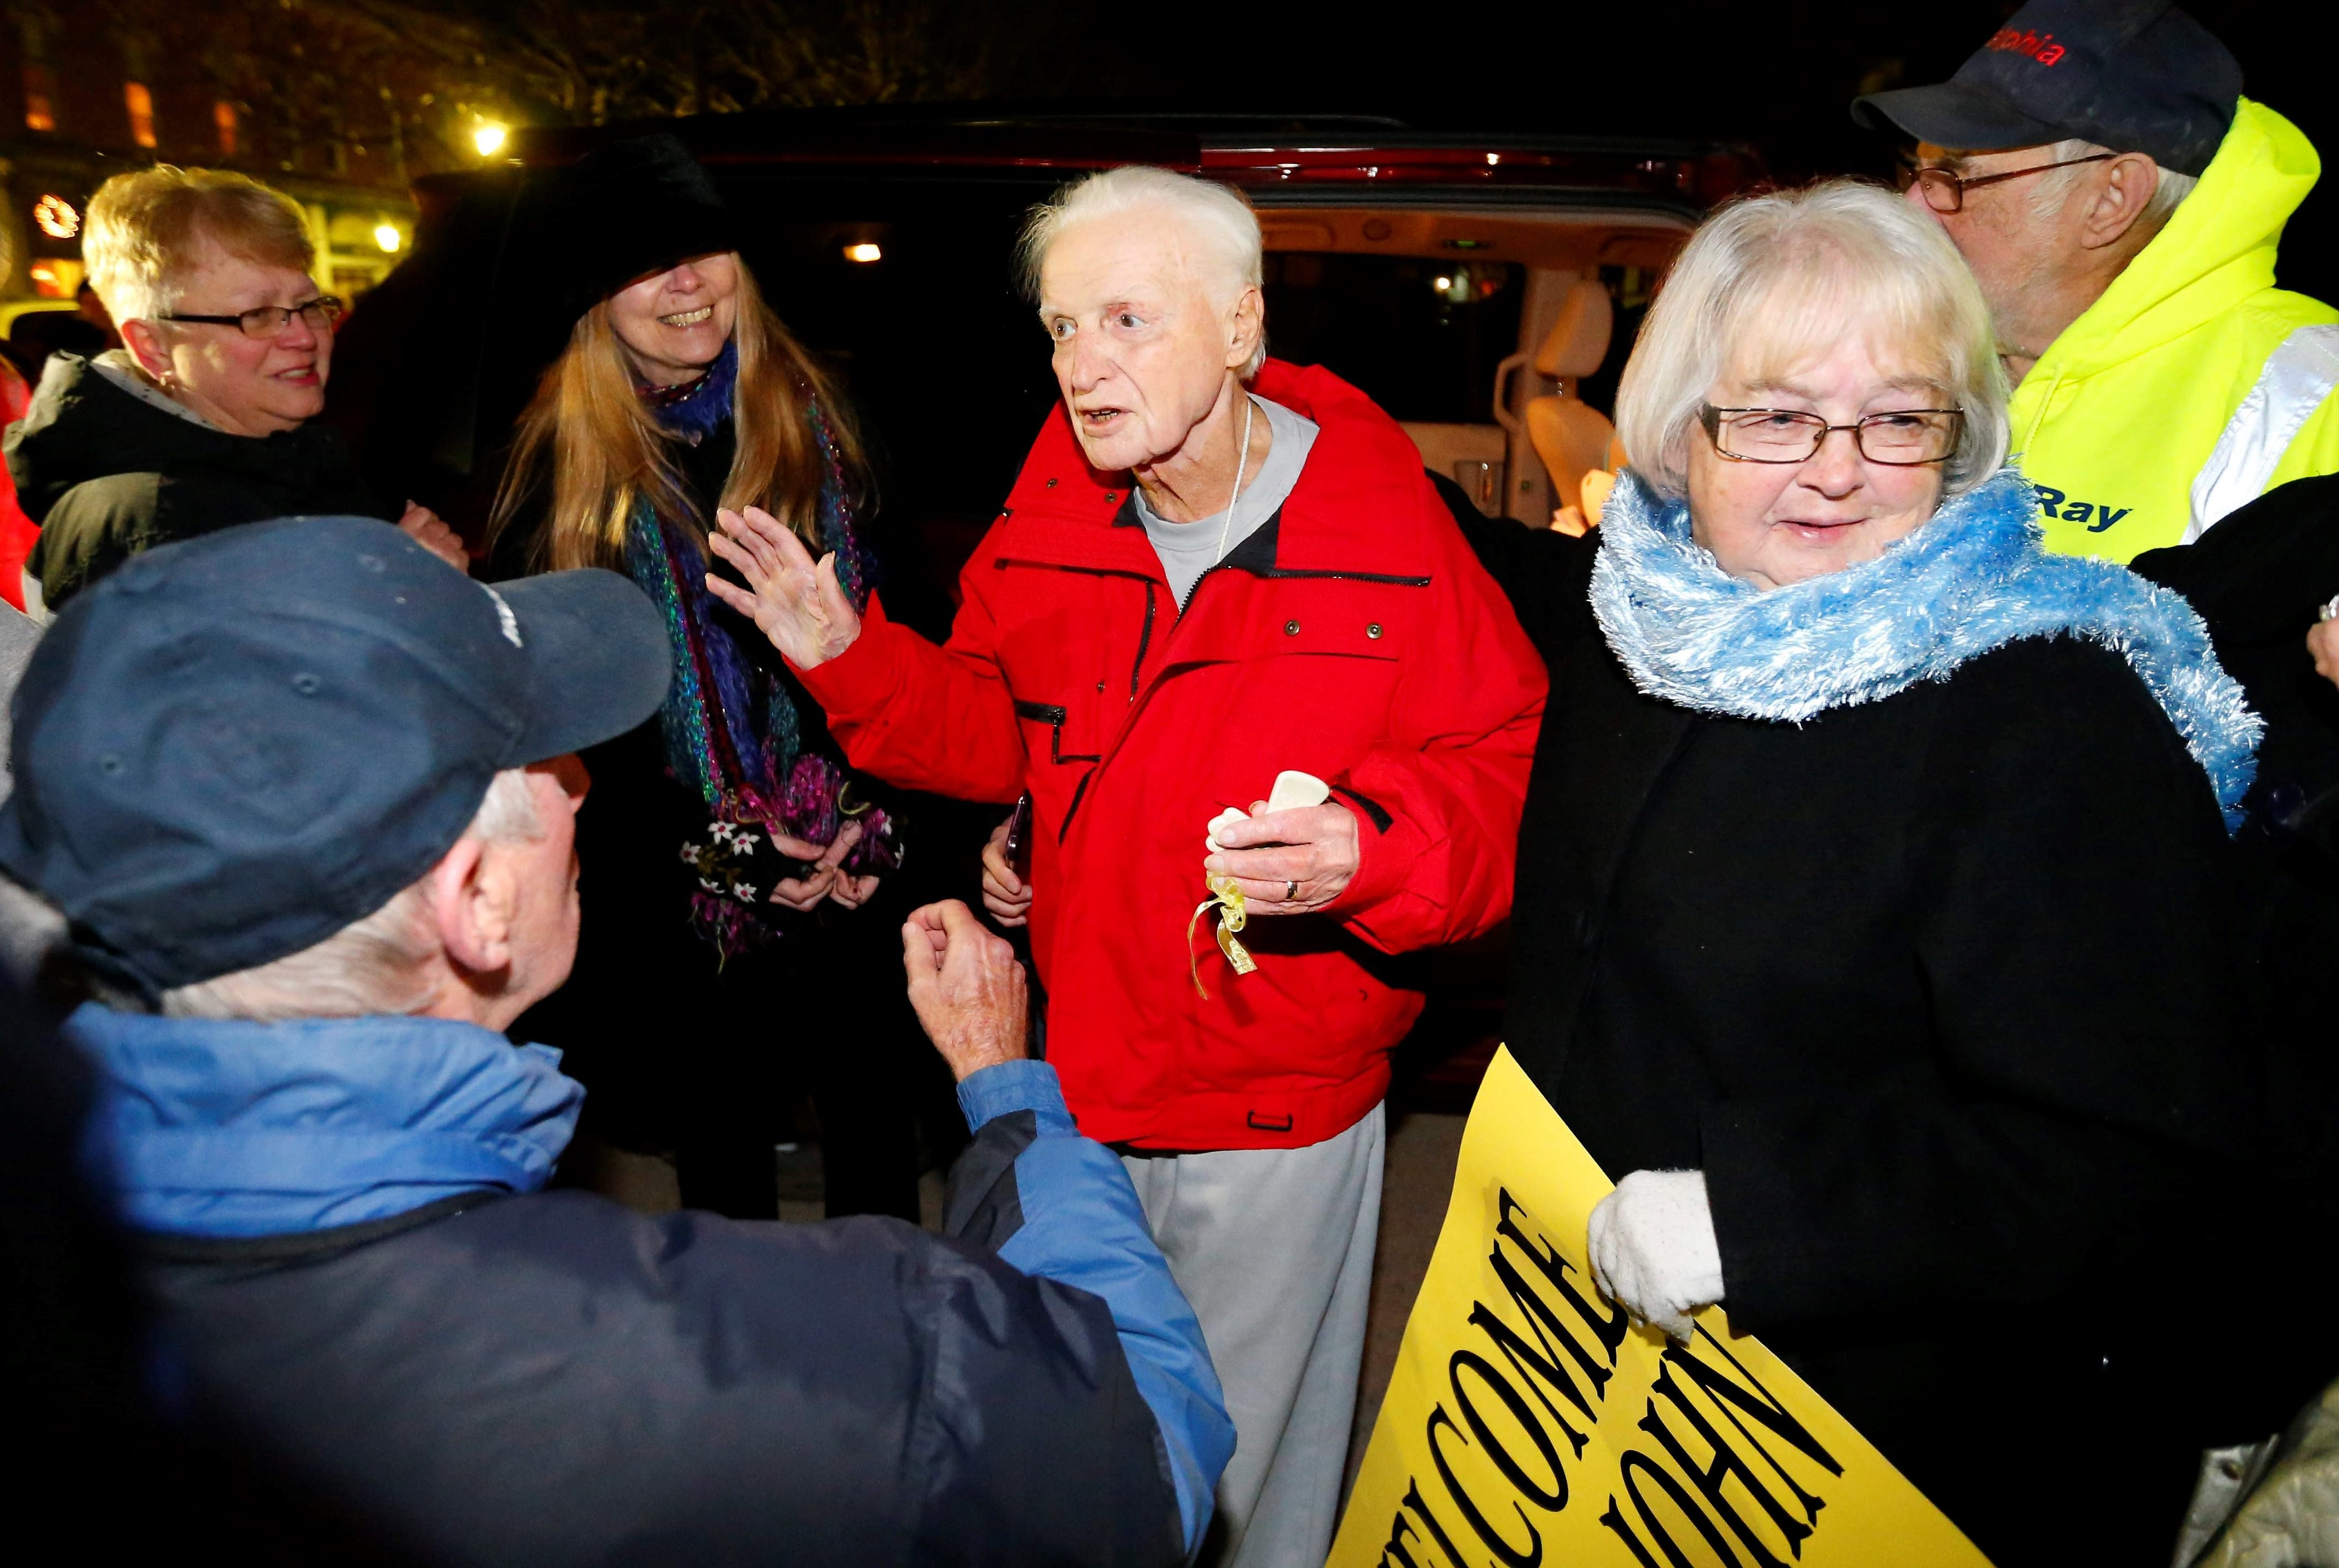 John Rigas is welcomed home from prison by the people of Coudersport, Pa., on Feb. 22, 2016.  (Mark Mulville/Buffalo News)